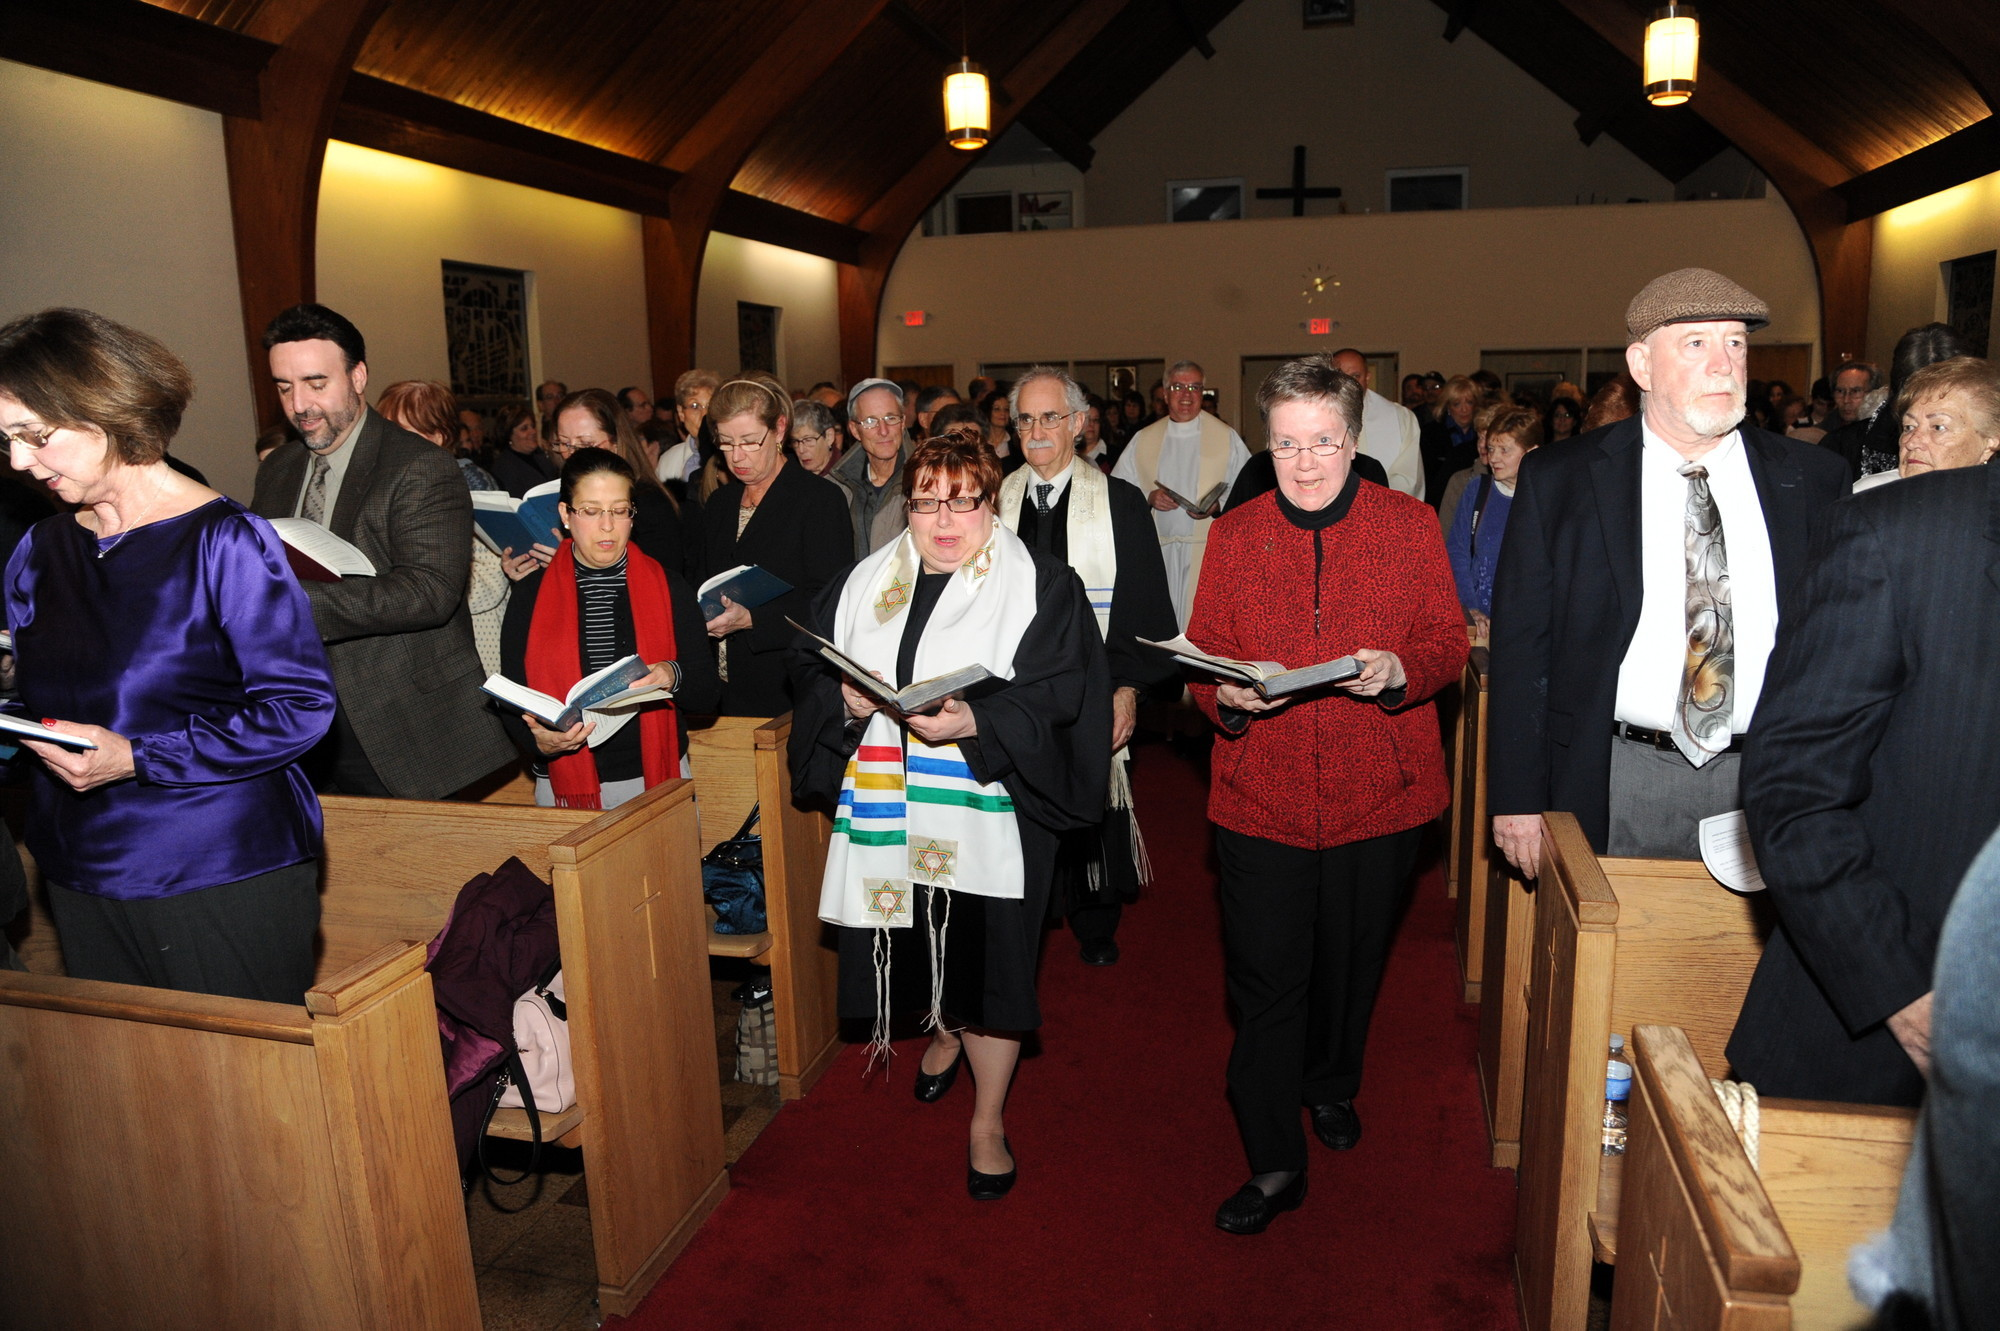 An interfaith service led by Rabbi Judith Cohen-Rosenberg of the Community Reform Temple, left, and Sister Judy of St. Raphael's Roman Catholic Church, in 2013.